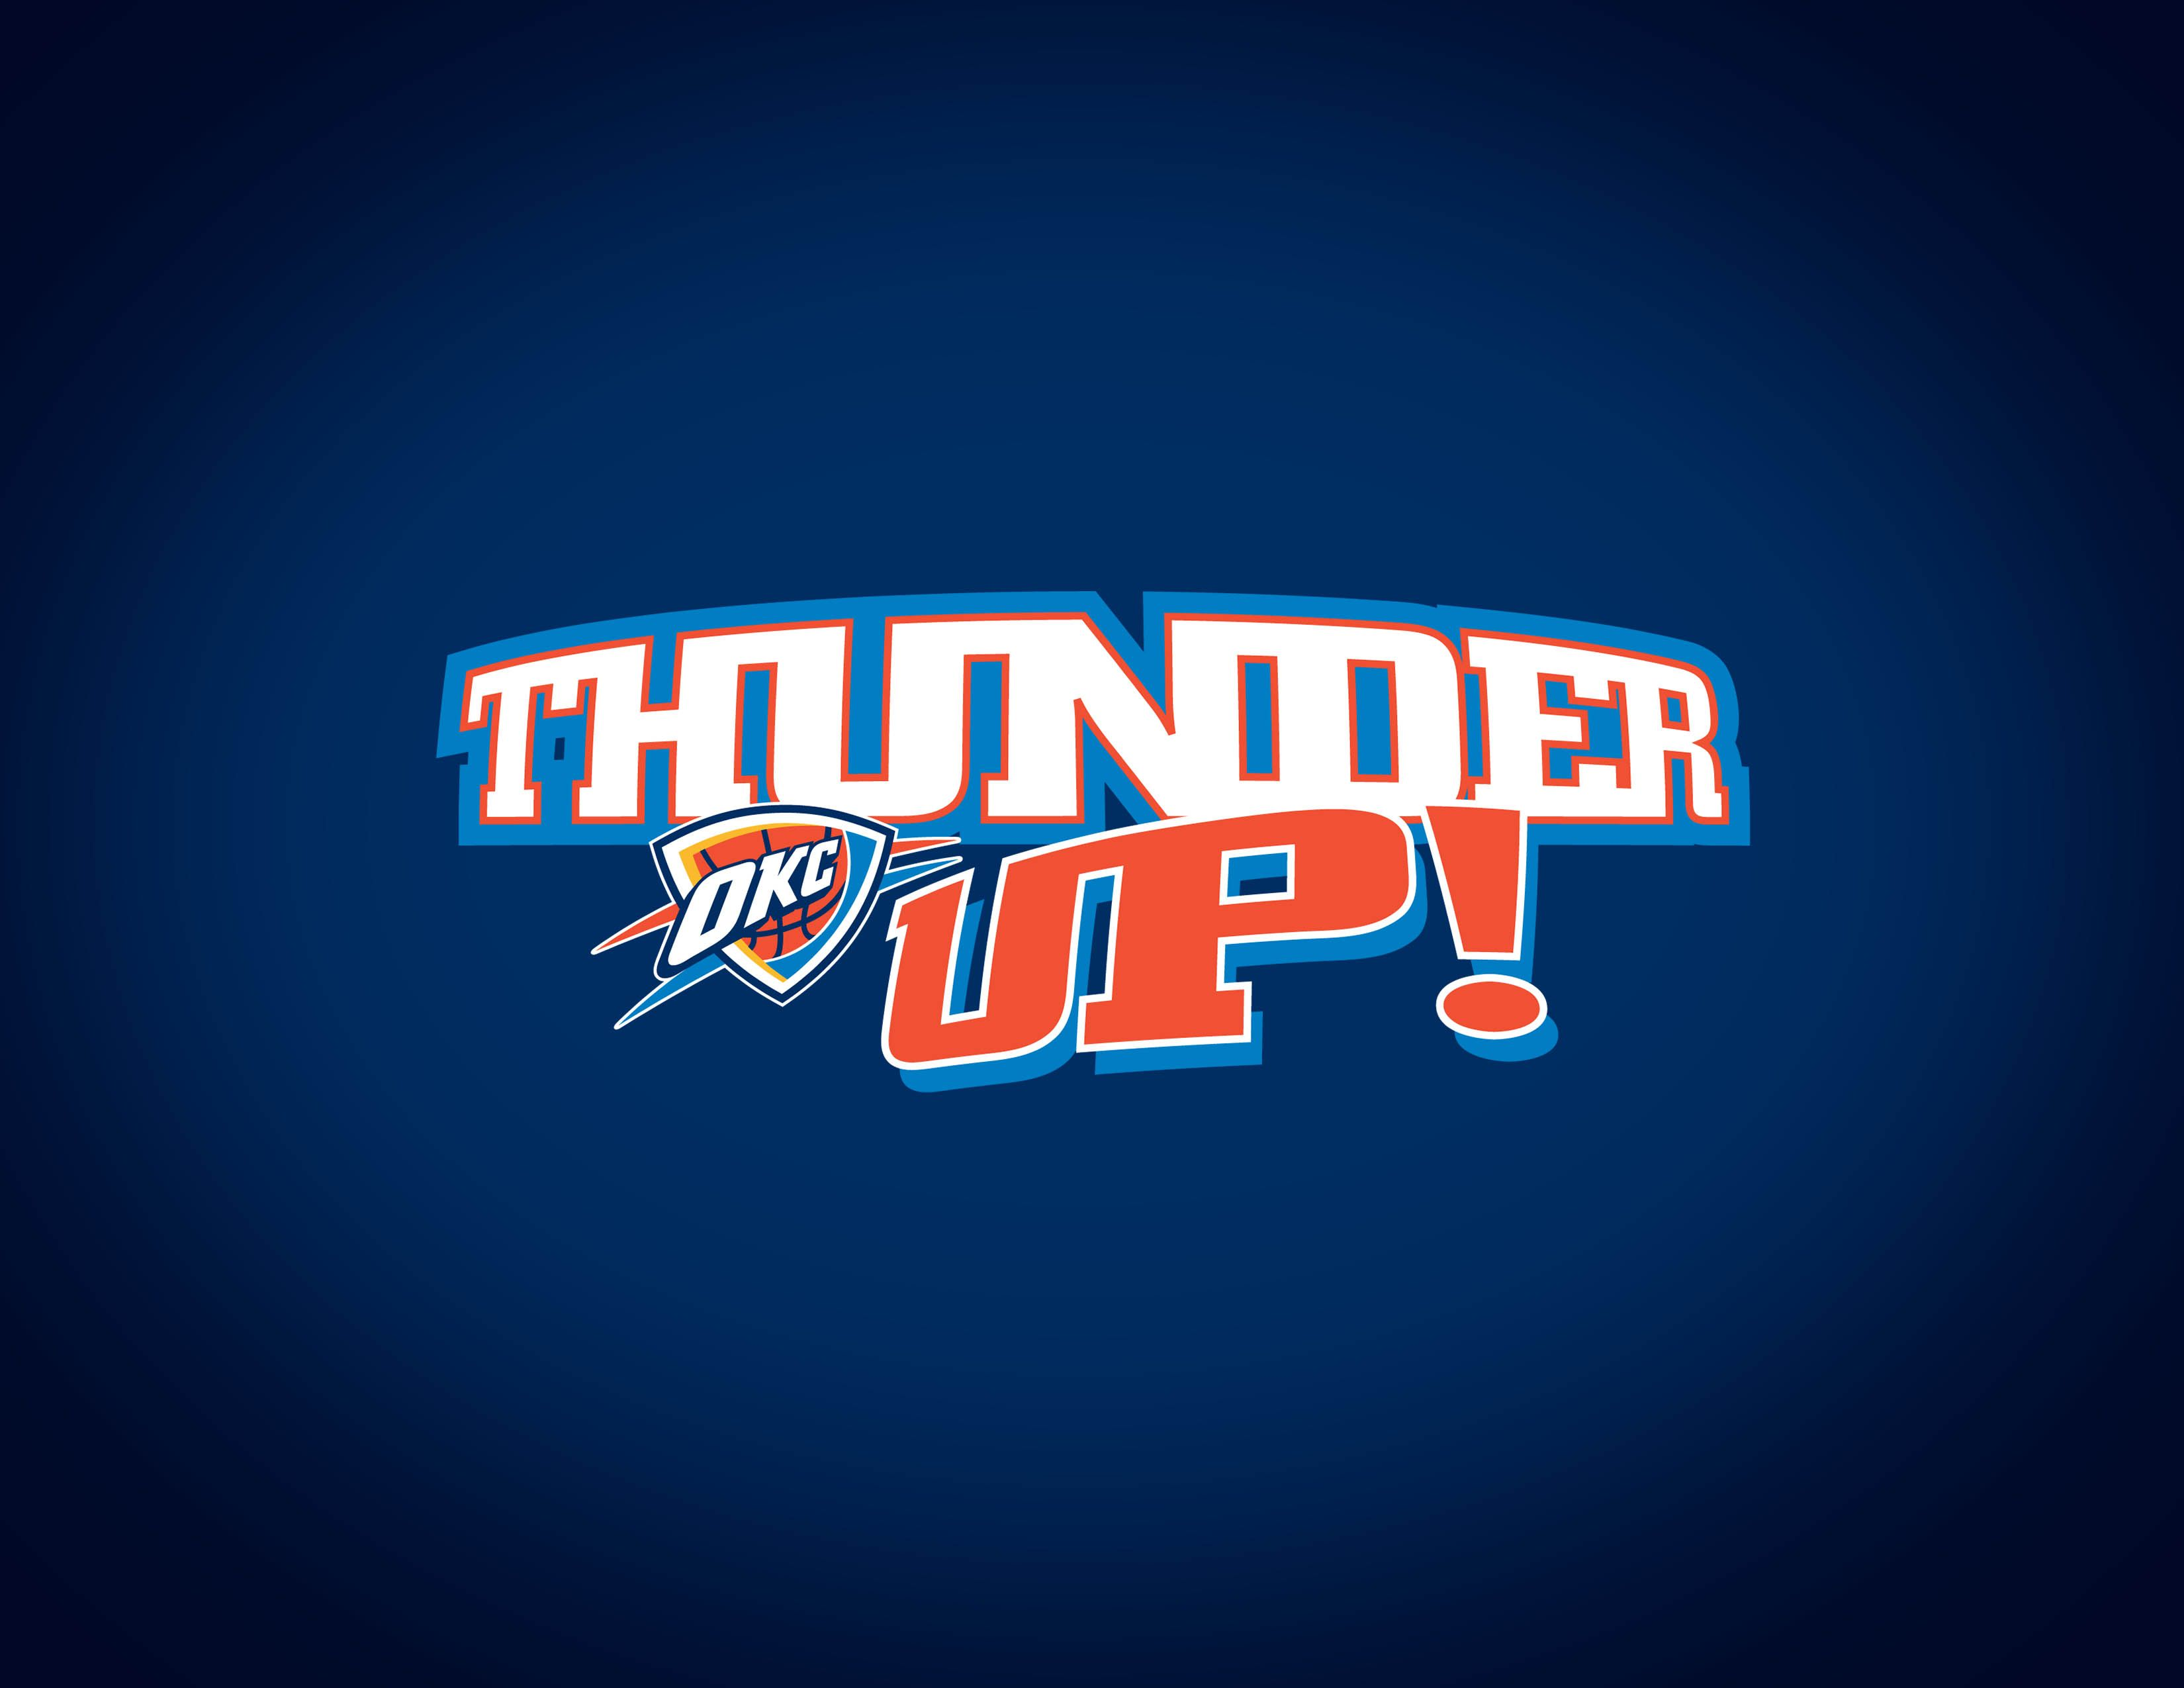 Do you feel bad for the seattle supersonics fans okc